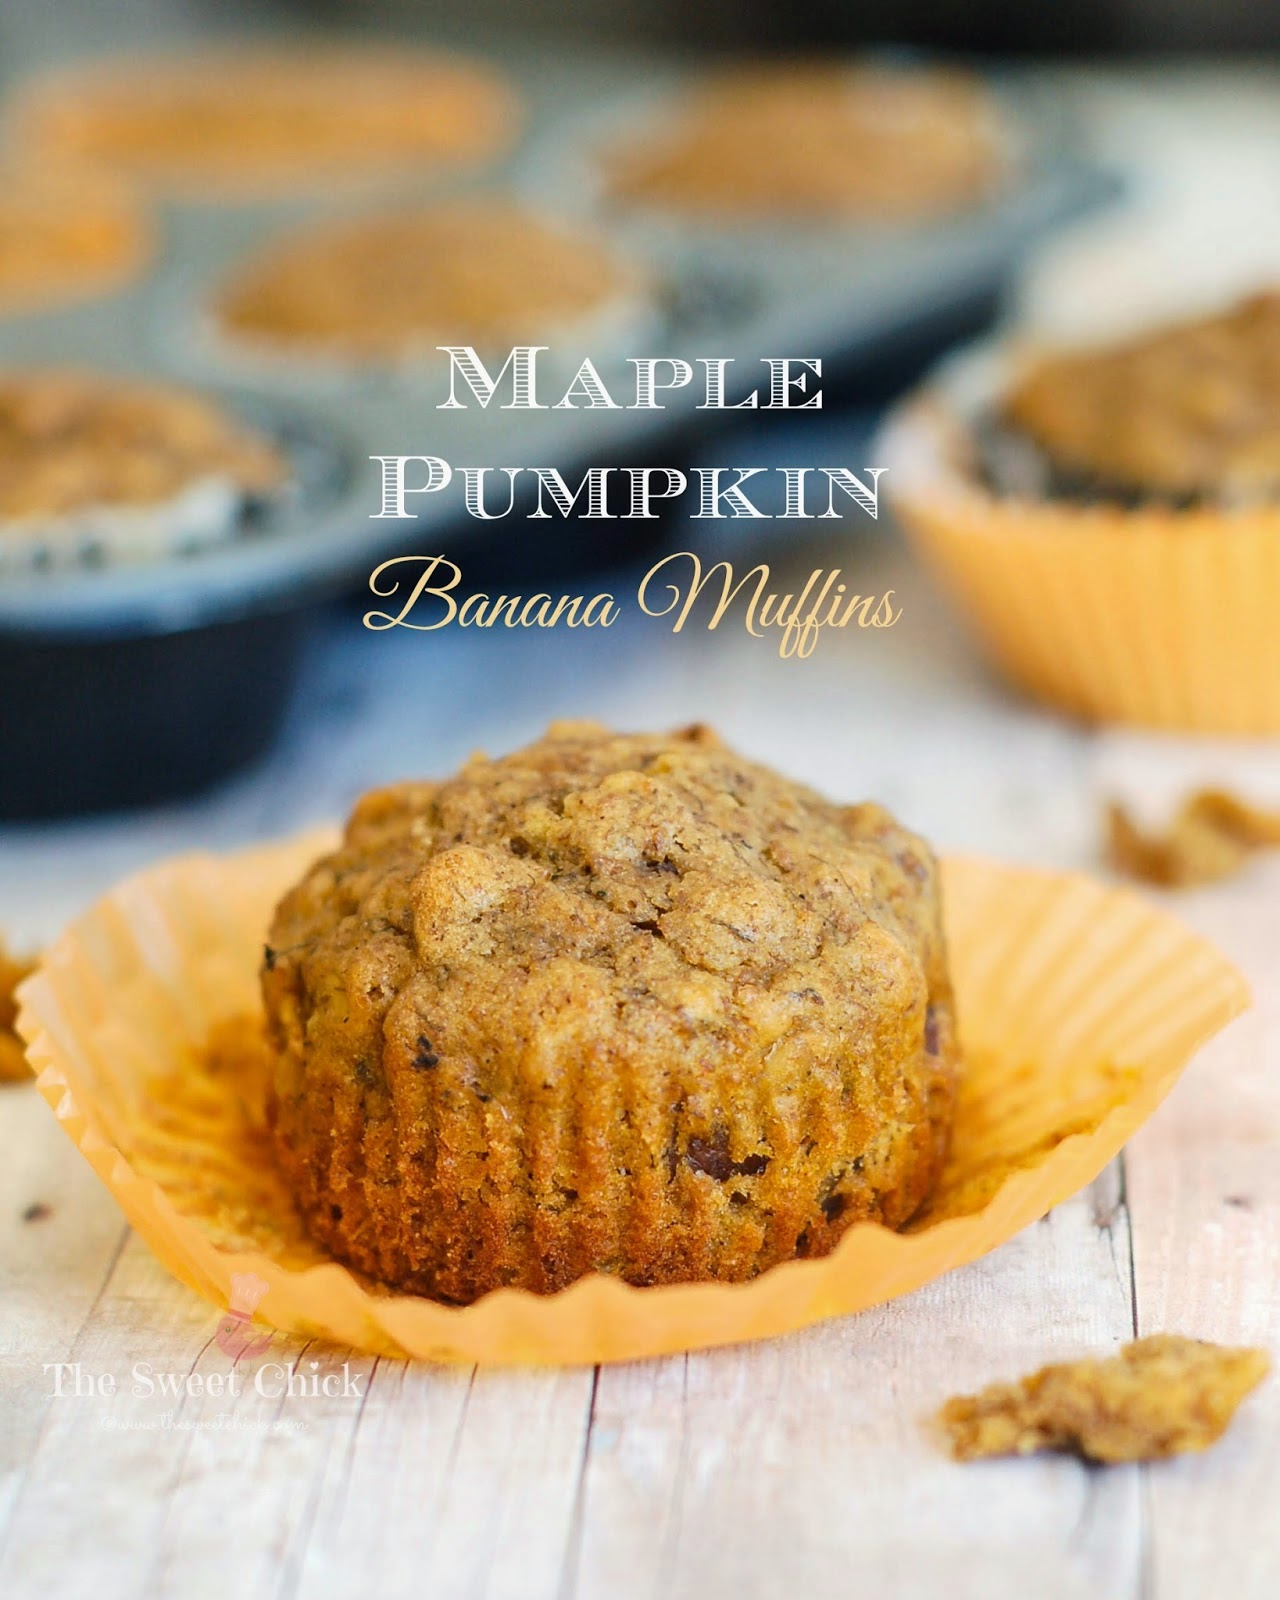 Maple Pumpkin Banana Muffins by The Sweet Chick